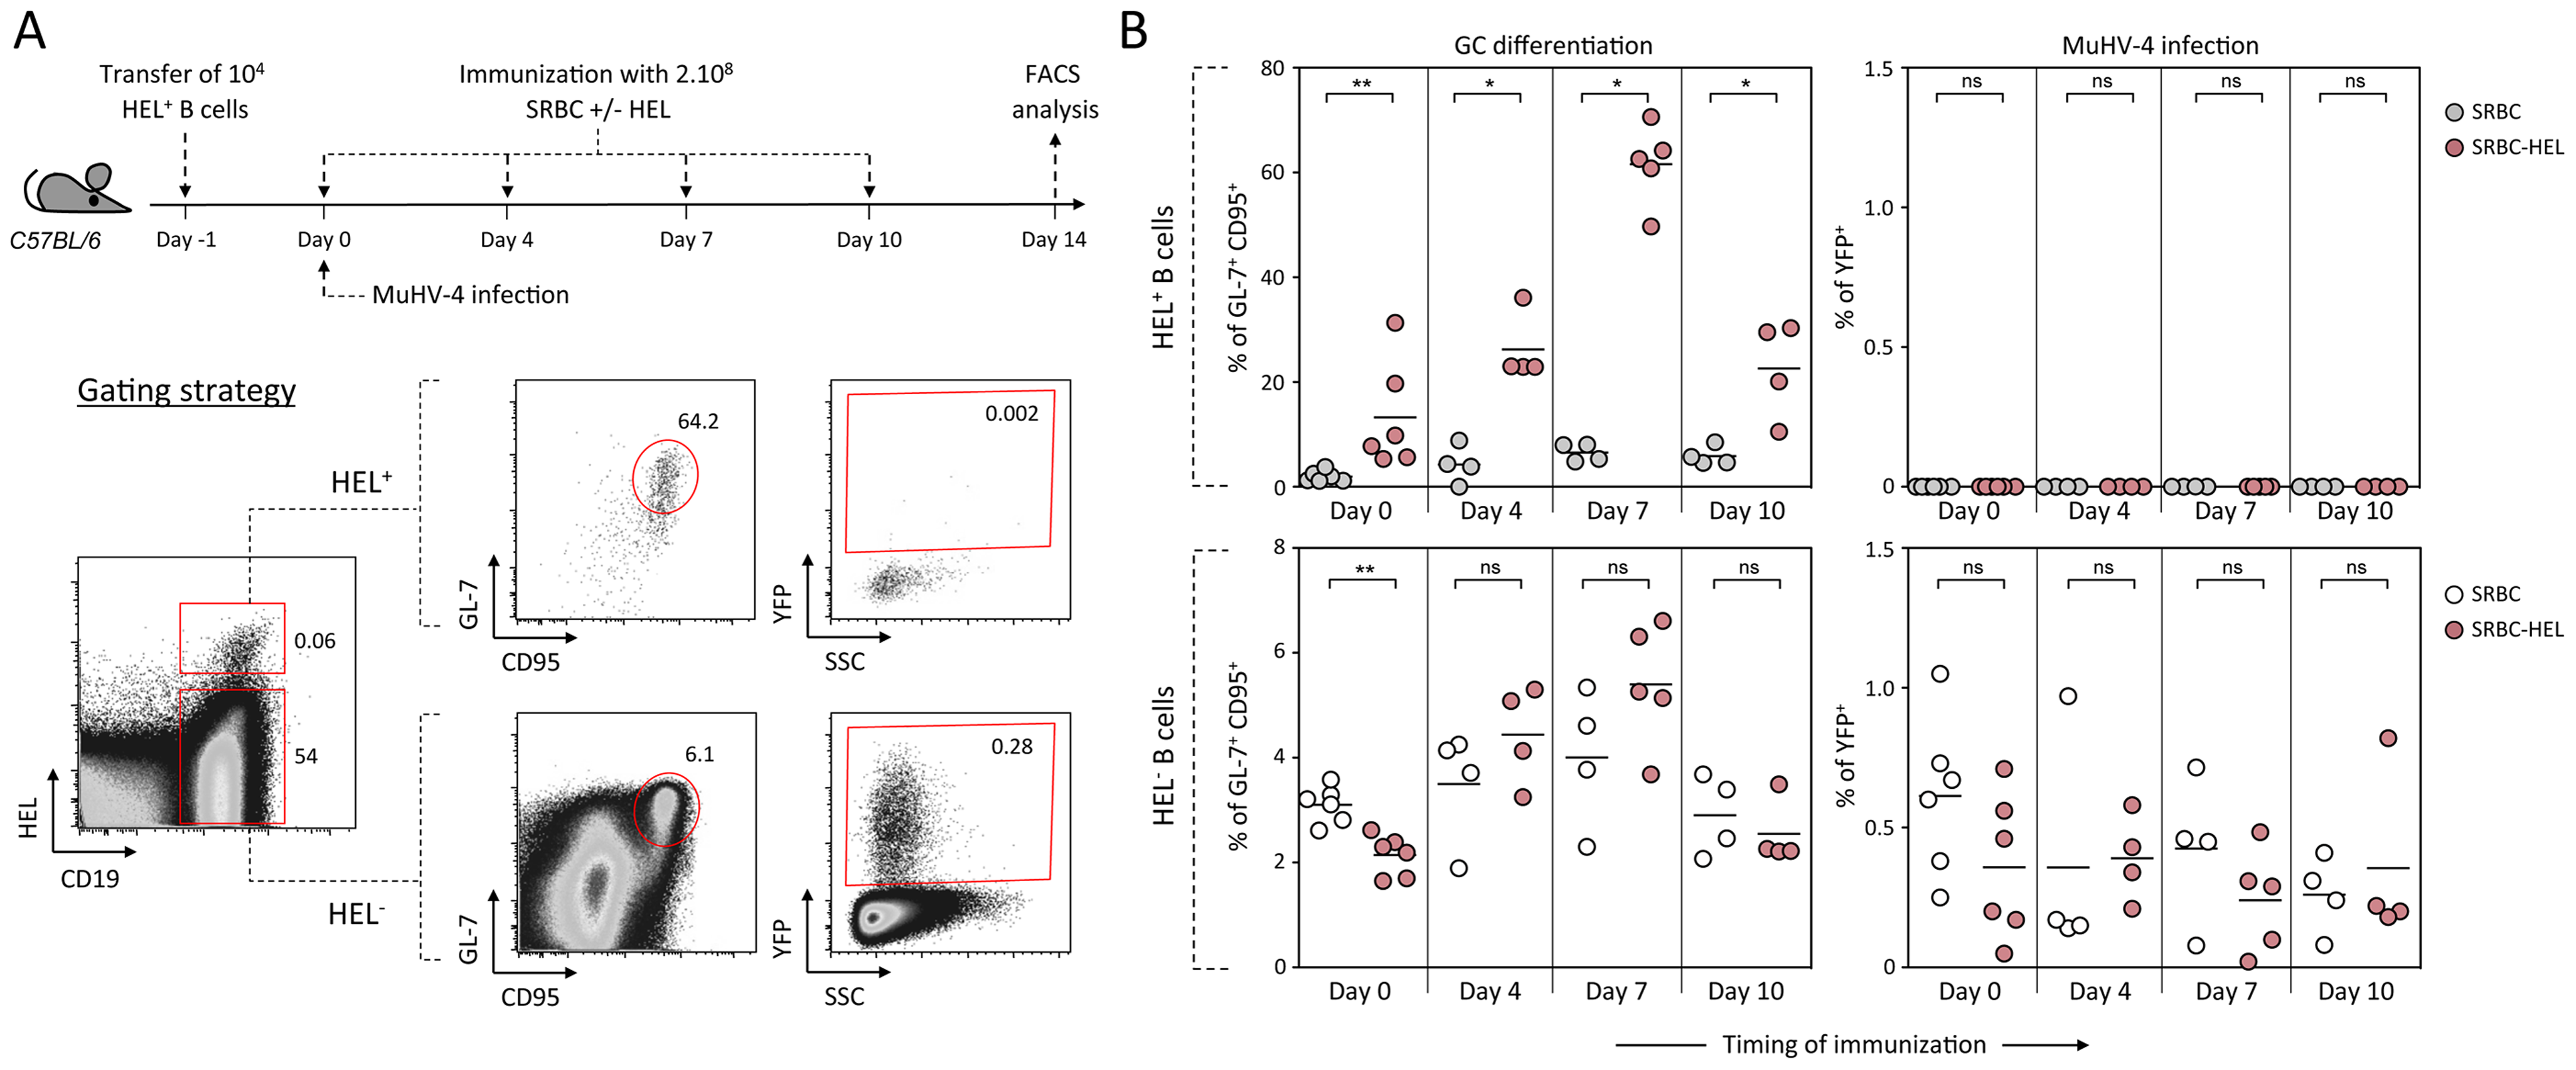 Activated HEL<sup>+</sup> B cells remain refractory to MuHV-4 infection.